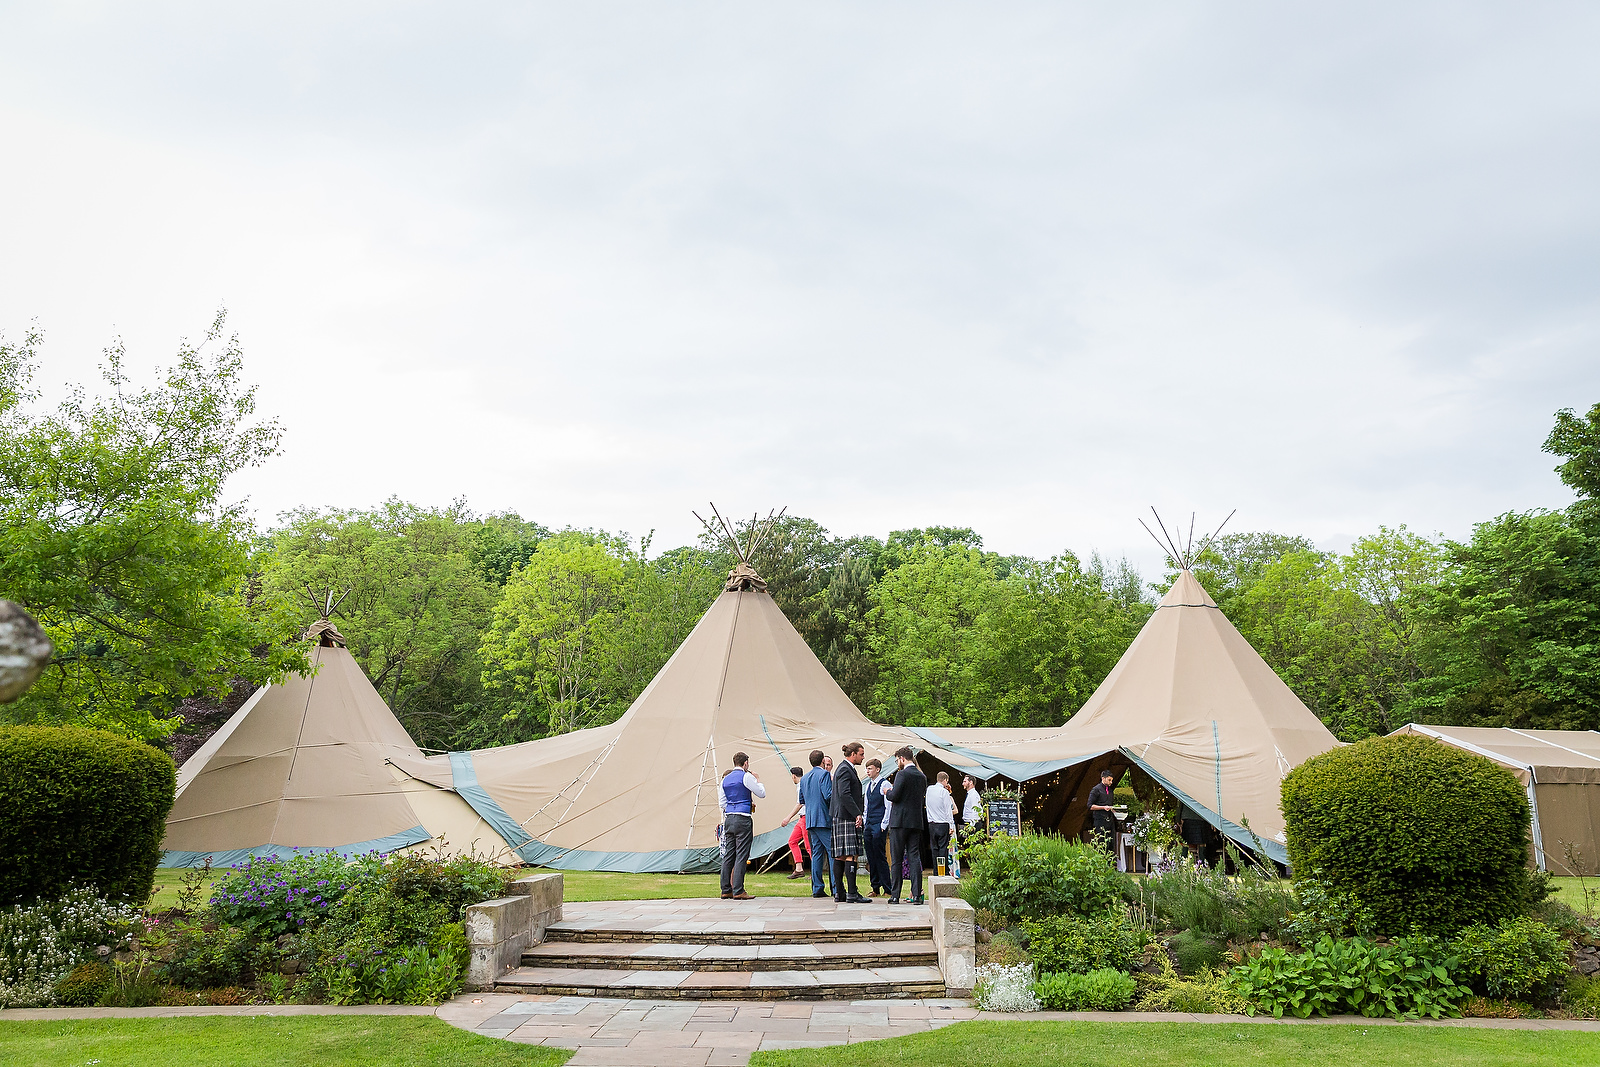 Harriet & William's PapaKåta Teepee Wedding at Gilmerton House captured by First Light Photography- Teepee Exterior